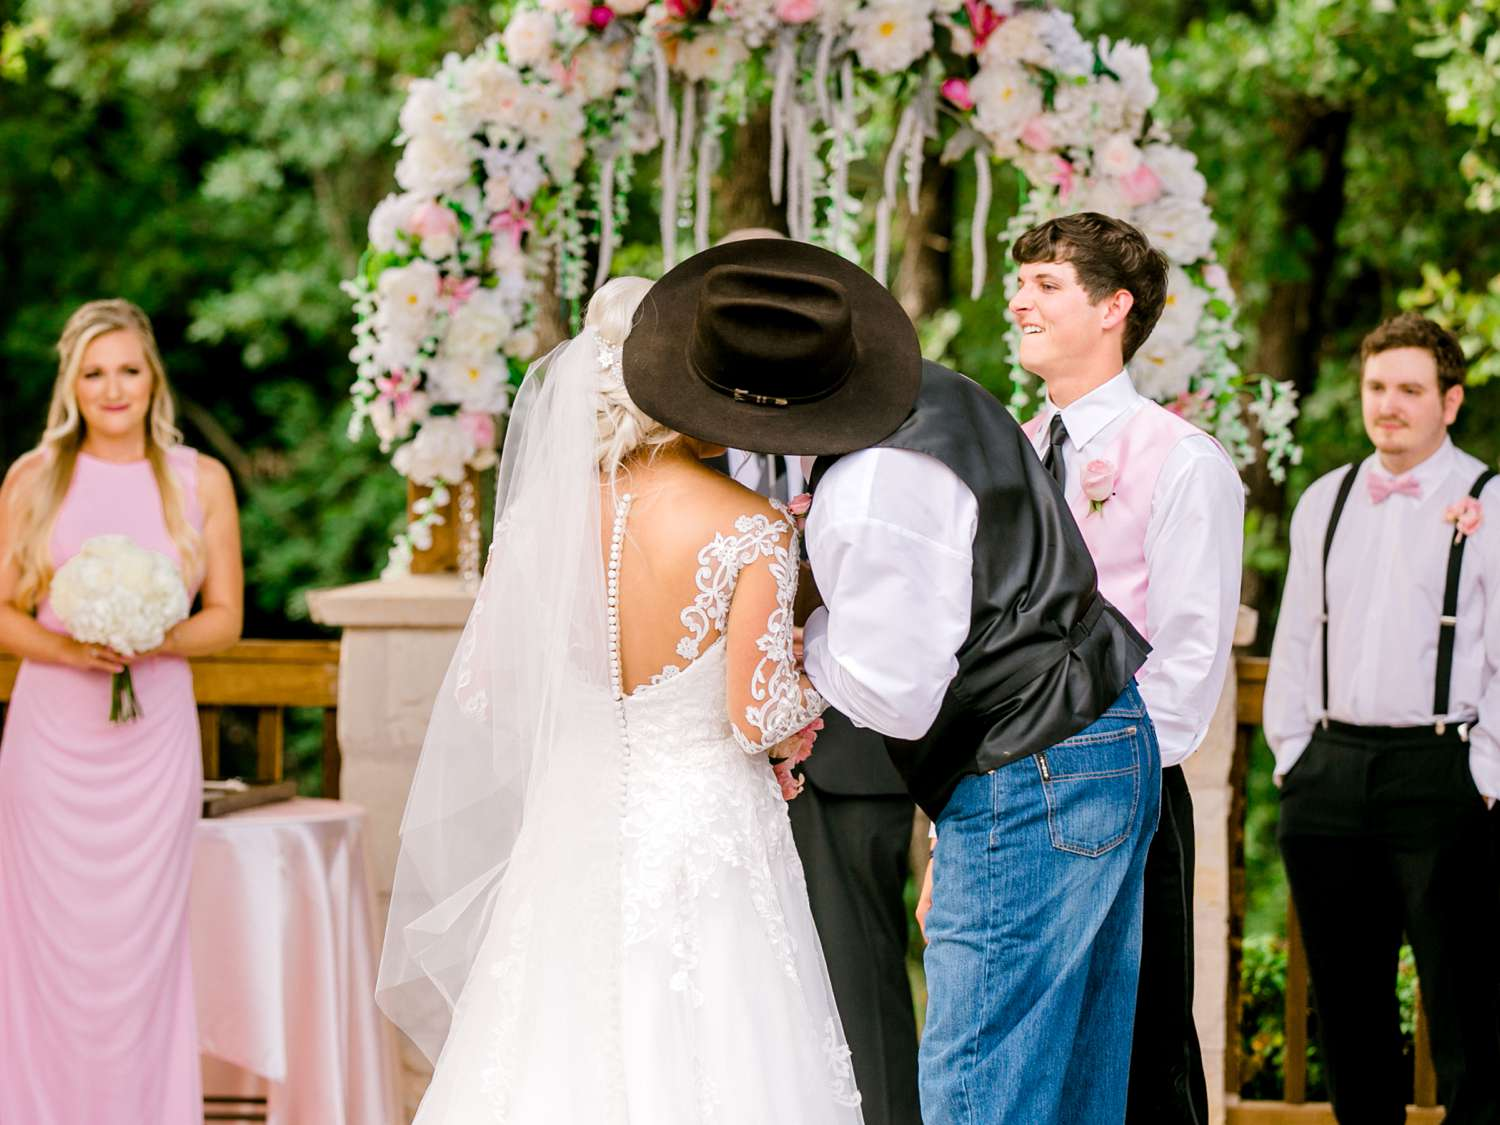 JESSICA+LYLE+NEEL+THE_SPRINGS_EVENTS_WEDDING_OKLAHOMA_ALLEEJ_PHOTOGRAPHER_0053.jpg